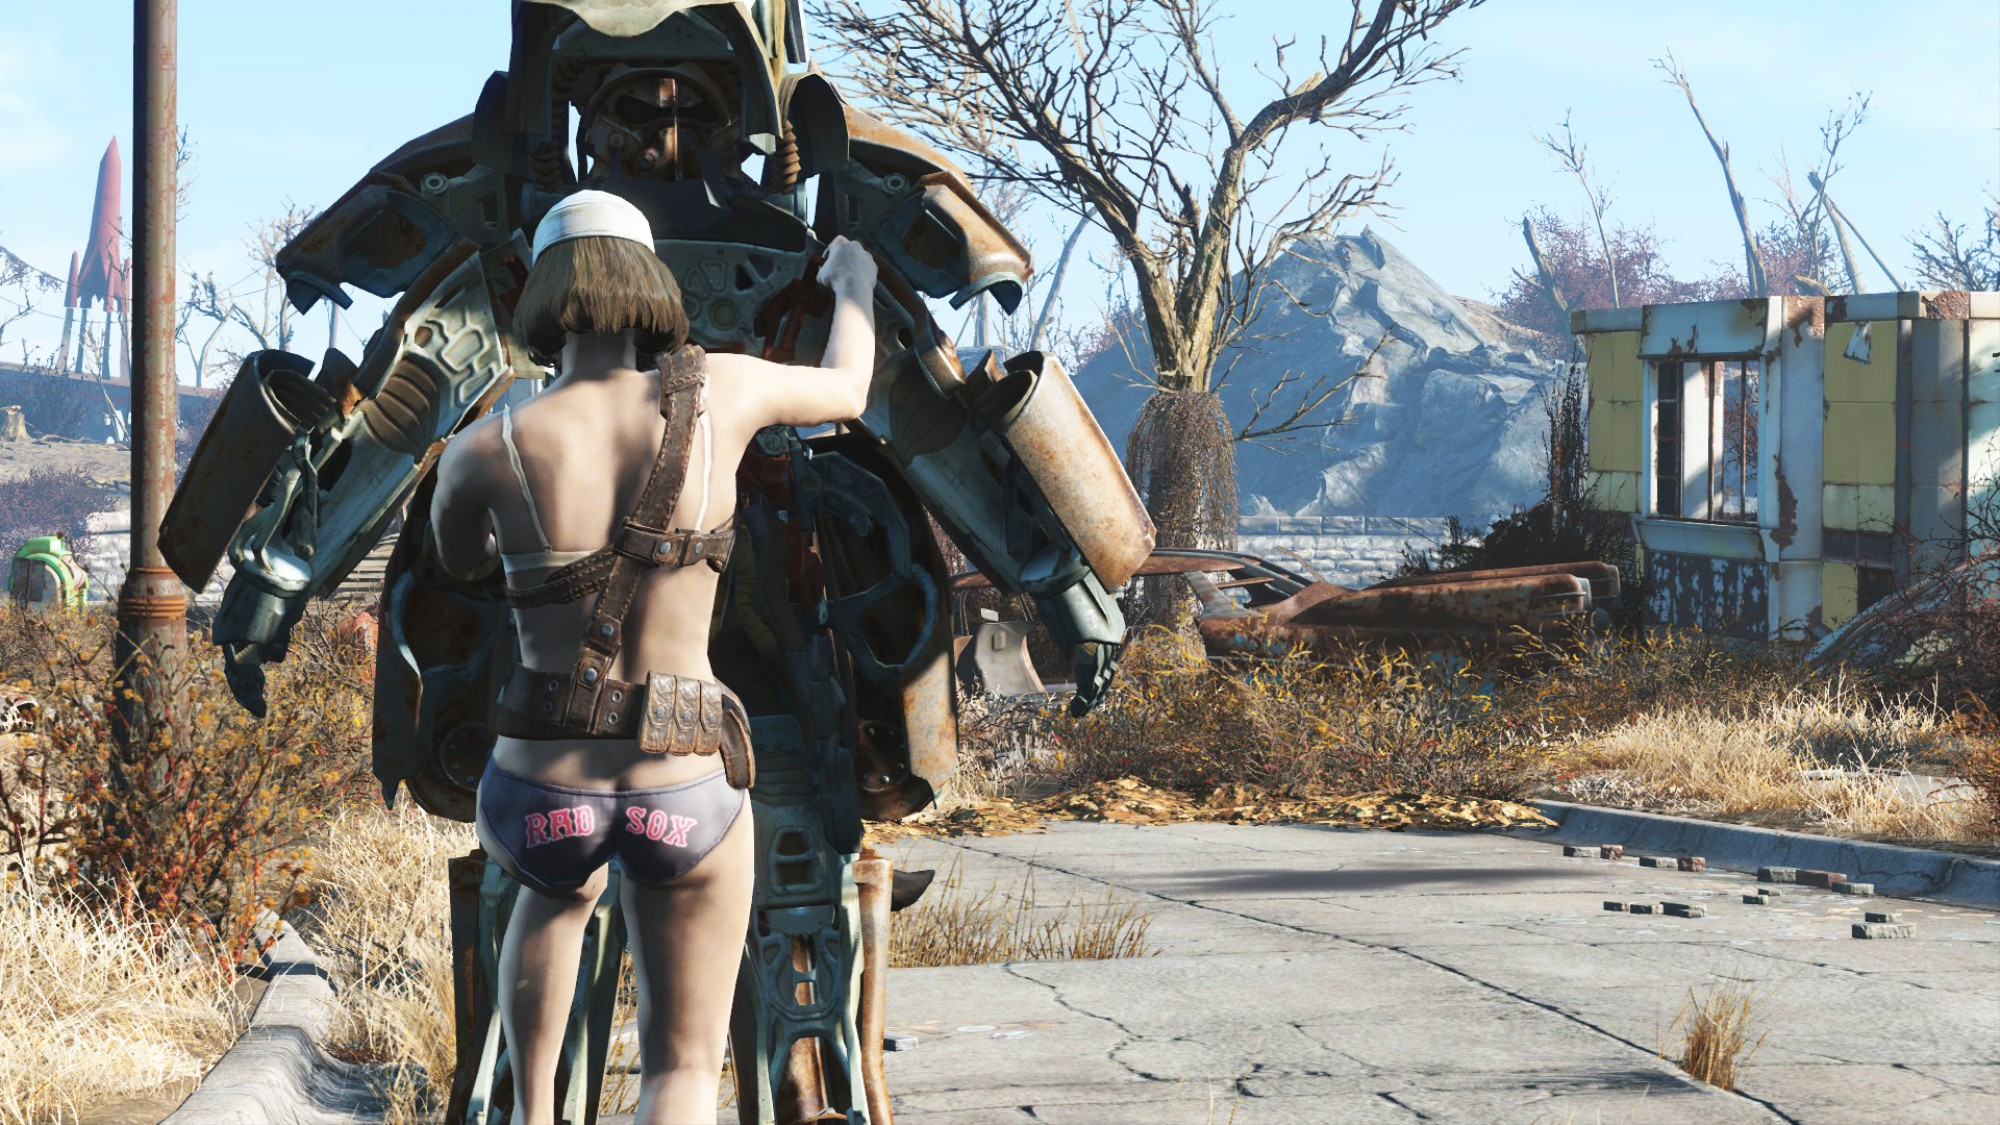 Fallout 4' Released Yesterday, But Modders Are Already